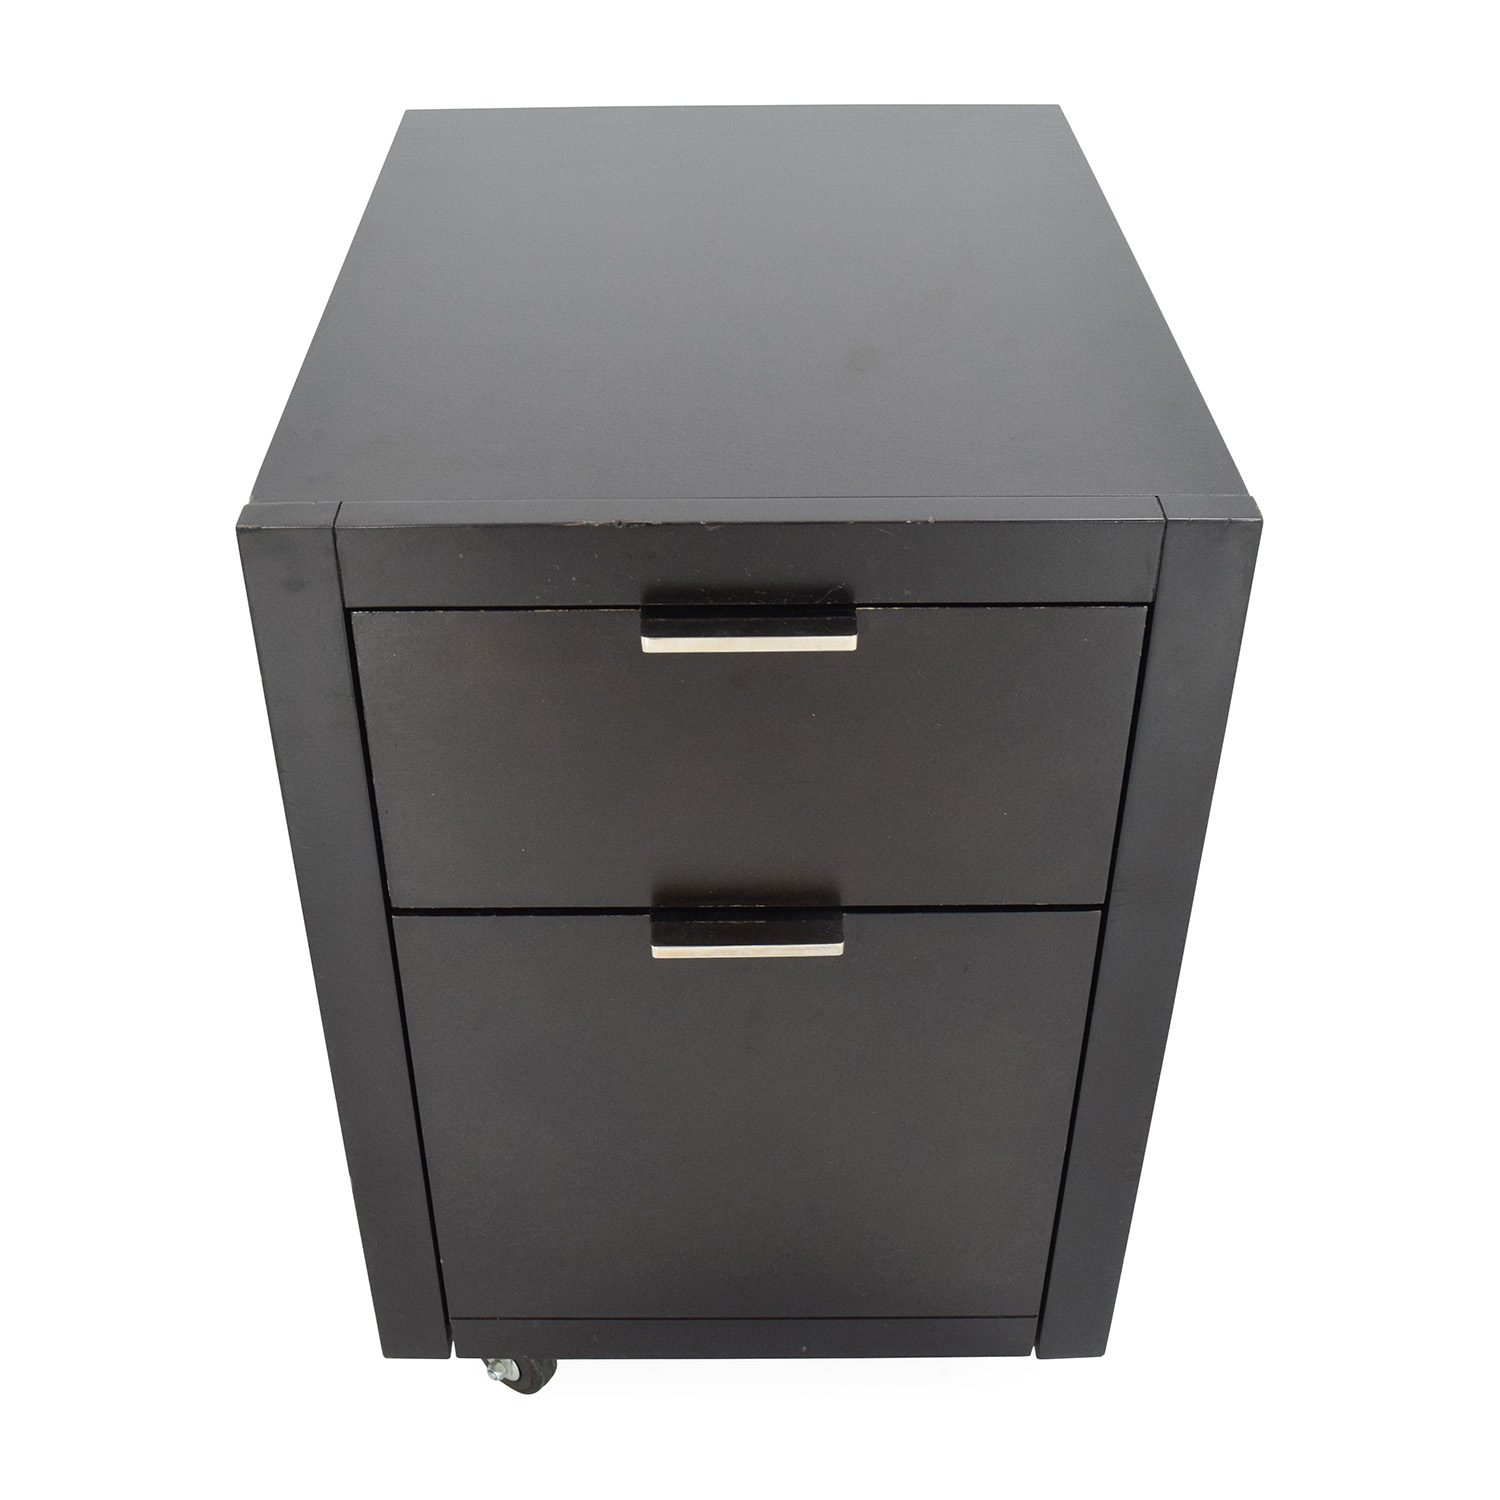 Unknown Brand Black Chest of Drawers for sale